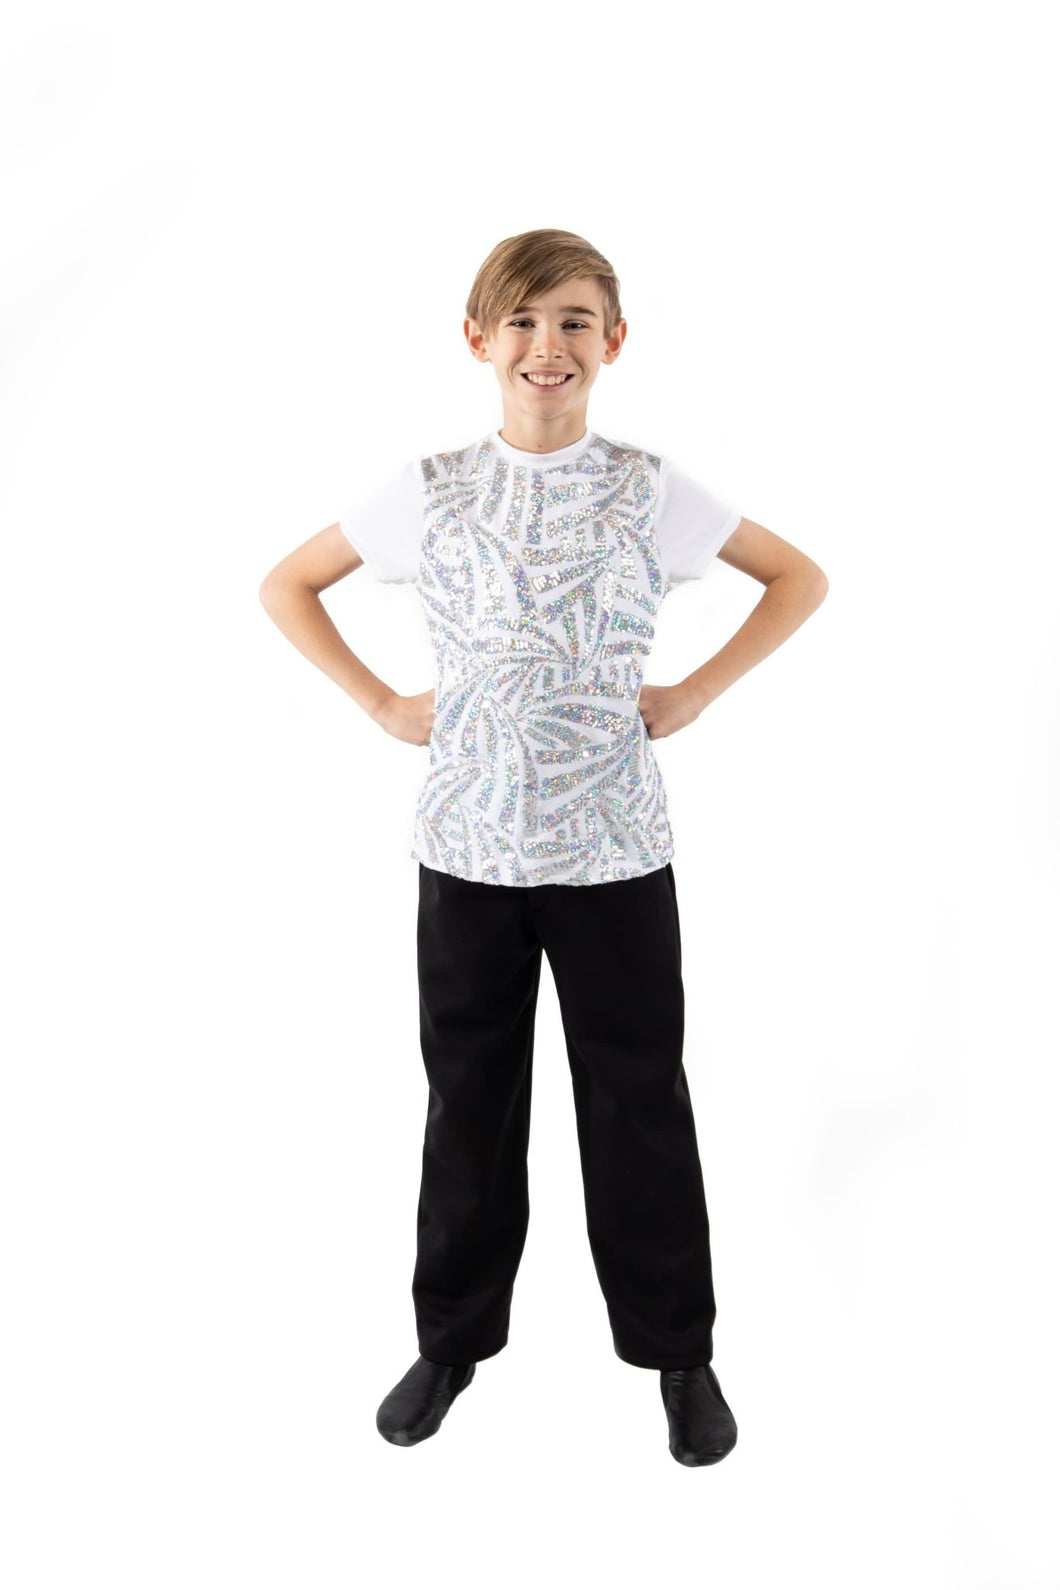 Boys Glimmer T-Shirt - Stardom Dance Costumes